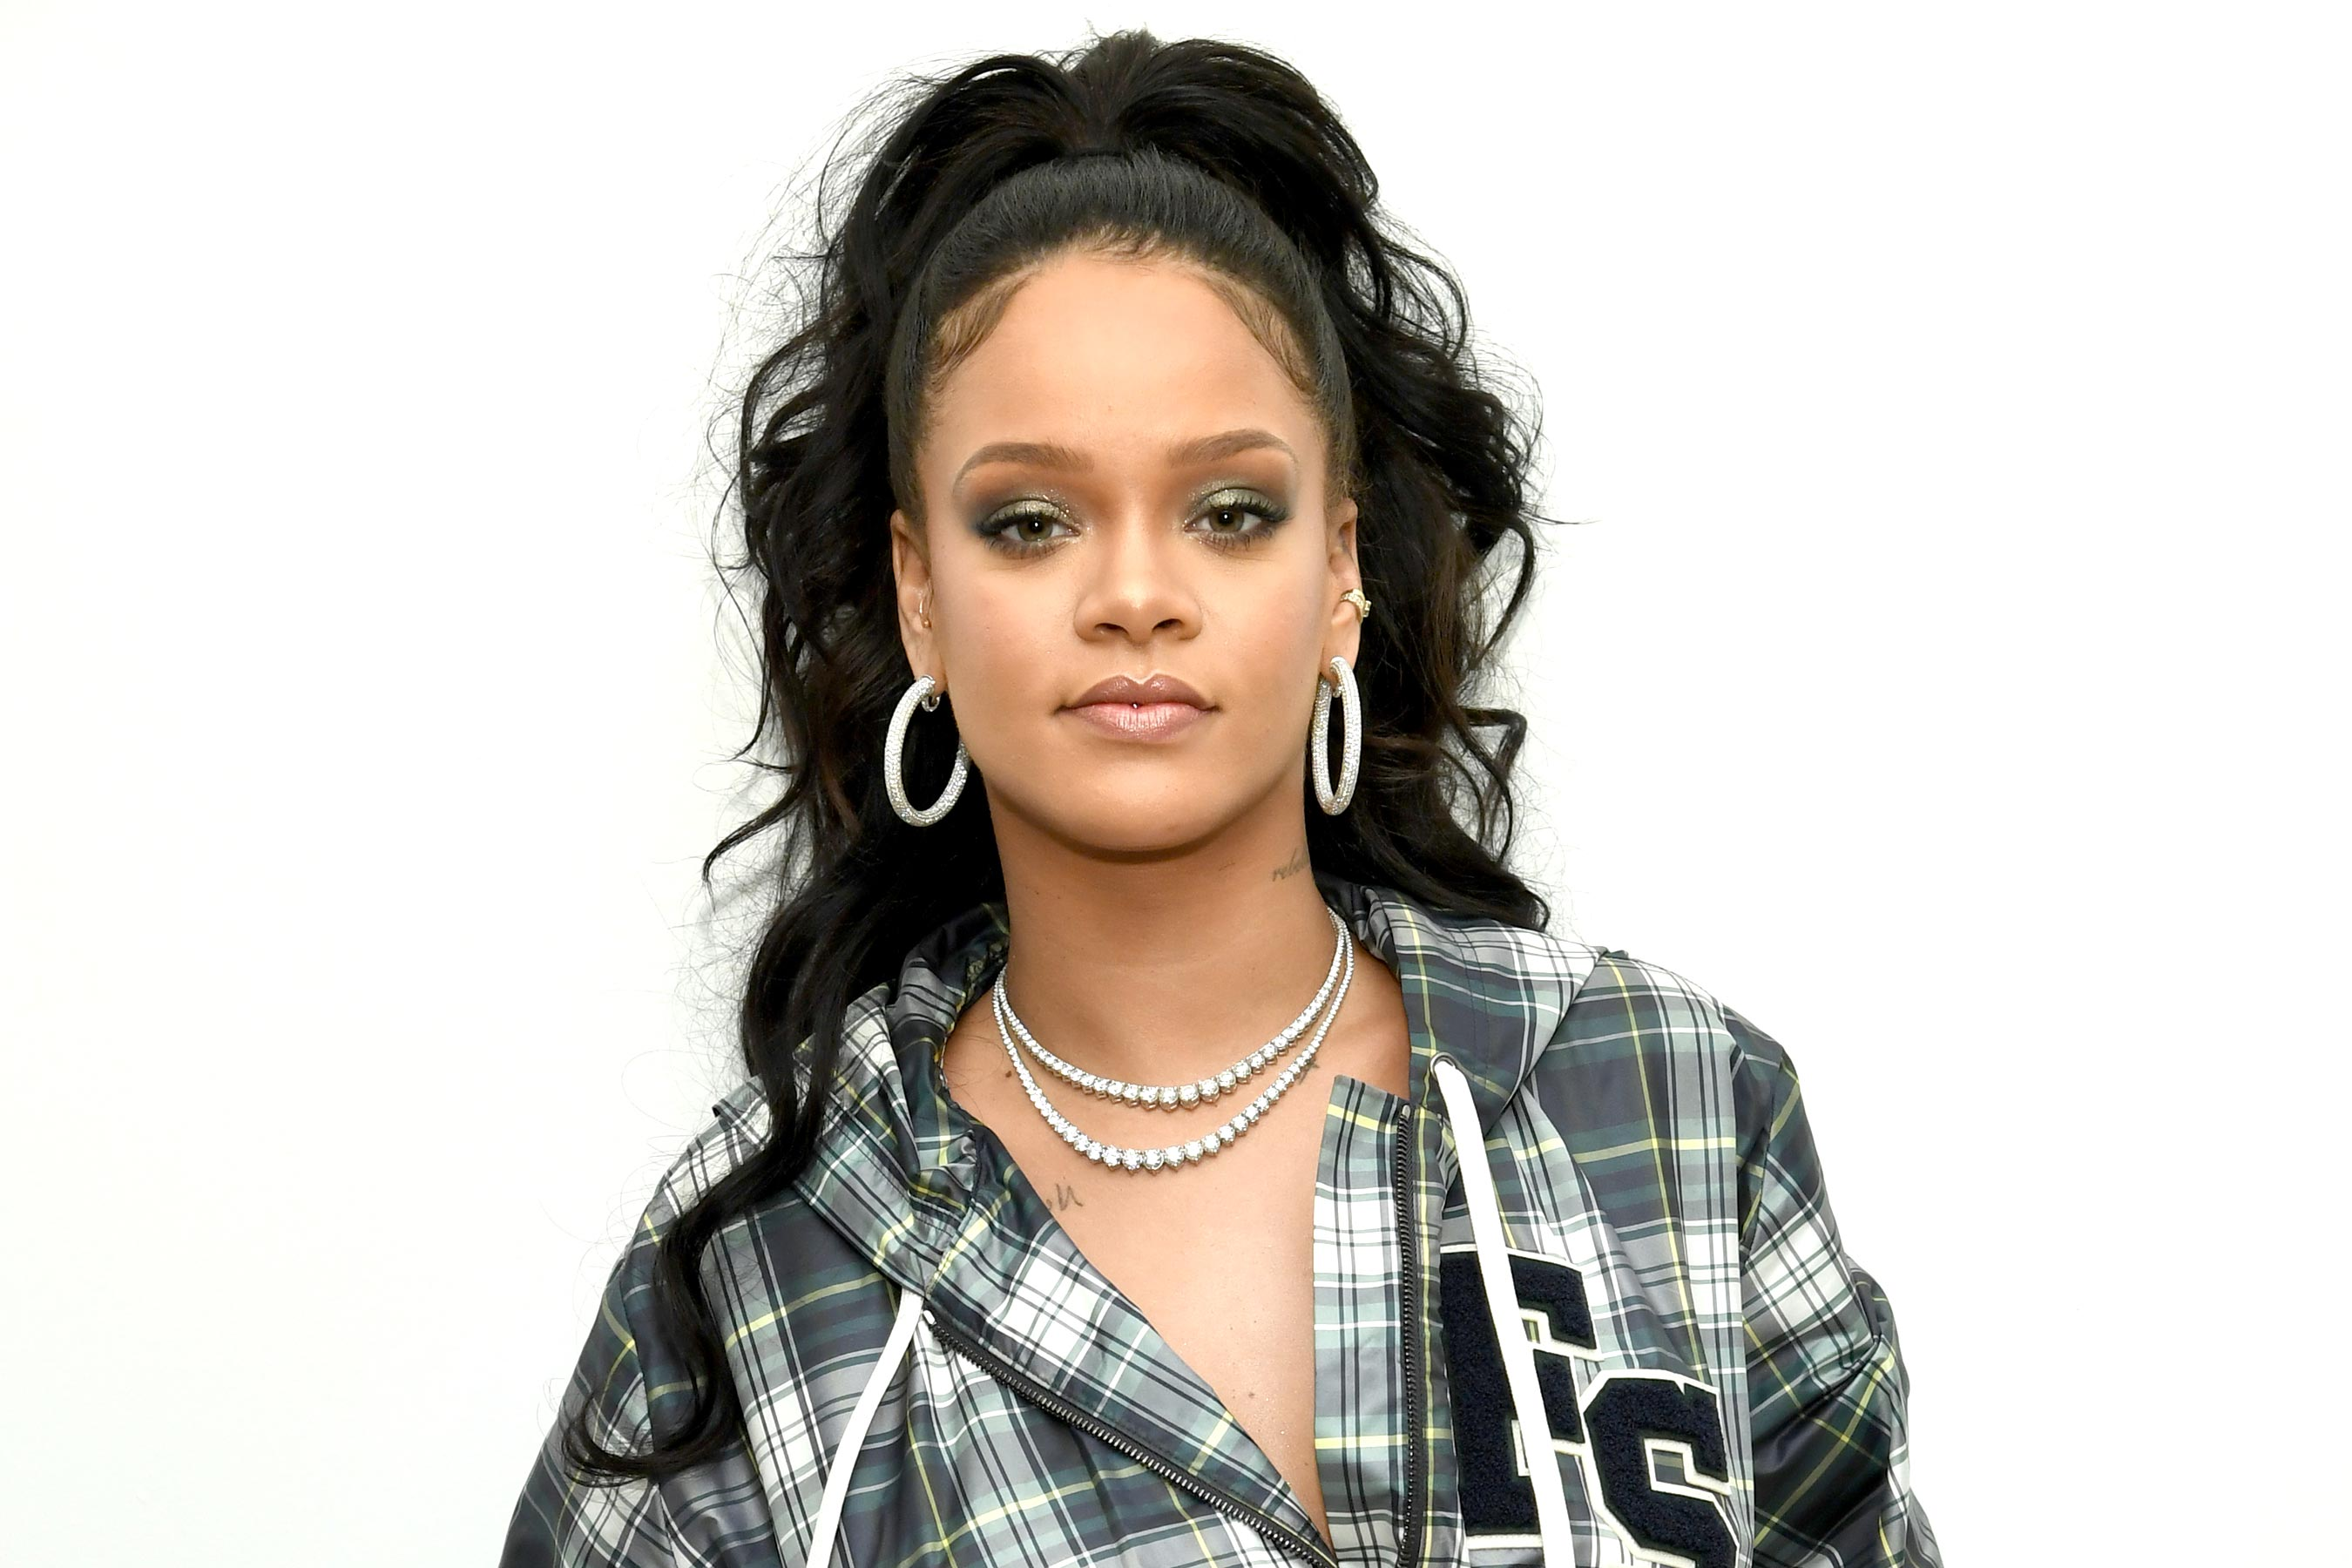 Rihanna slams Snapchat for controversial Chris Brown ad: Shame on you